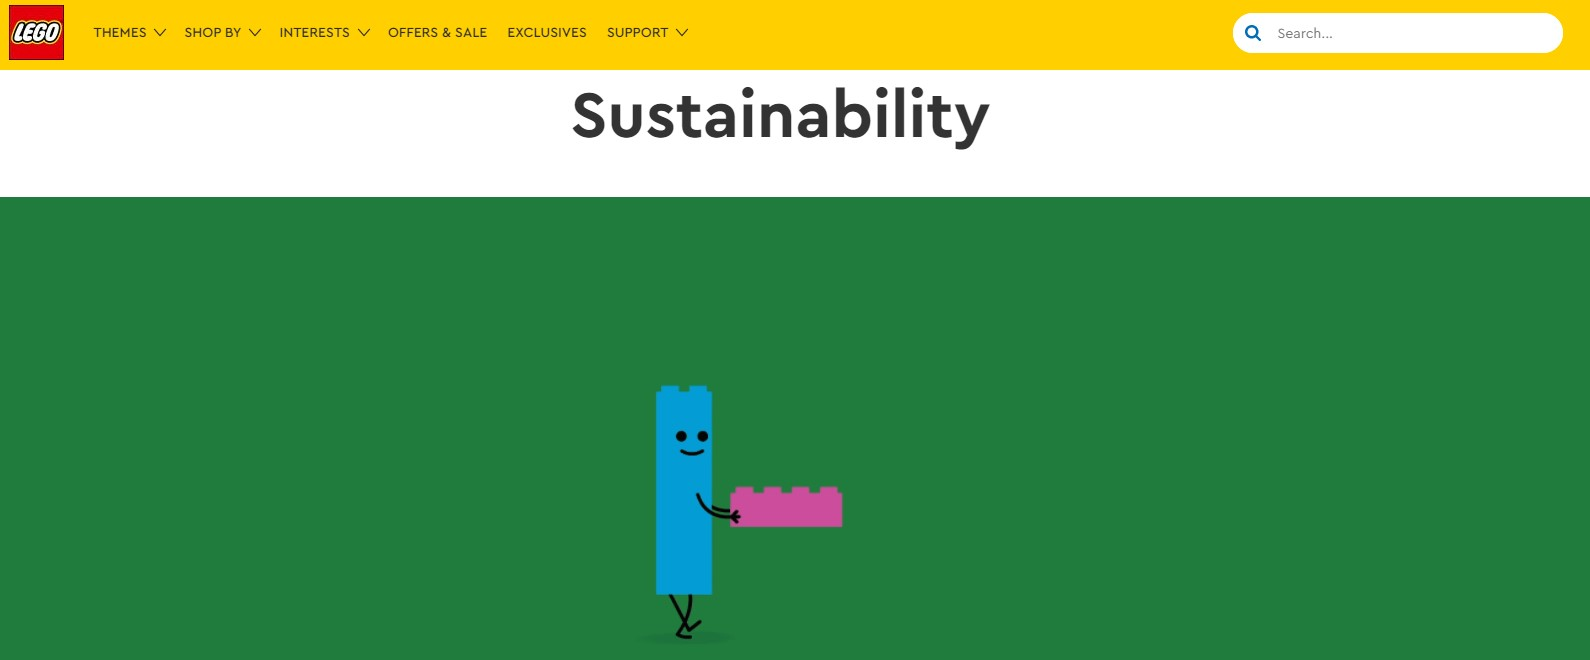 Example of work - writing the sustainability website for The LEGO Group